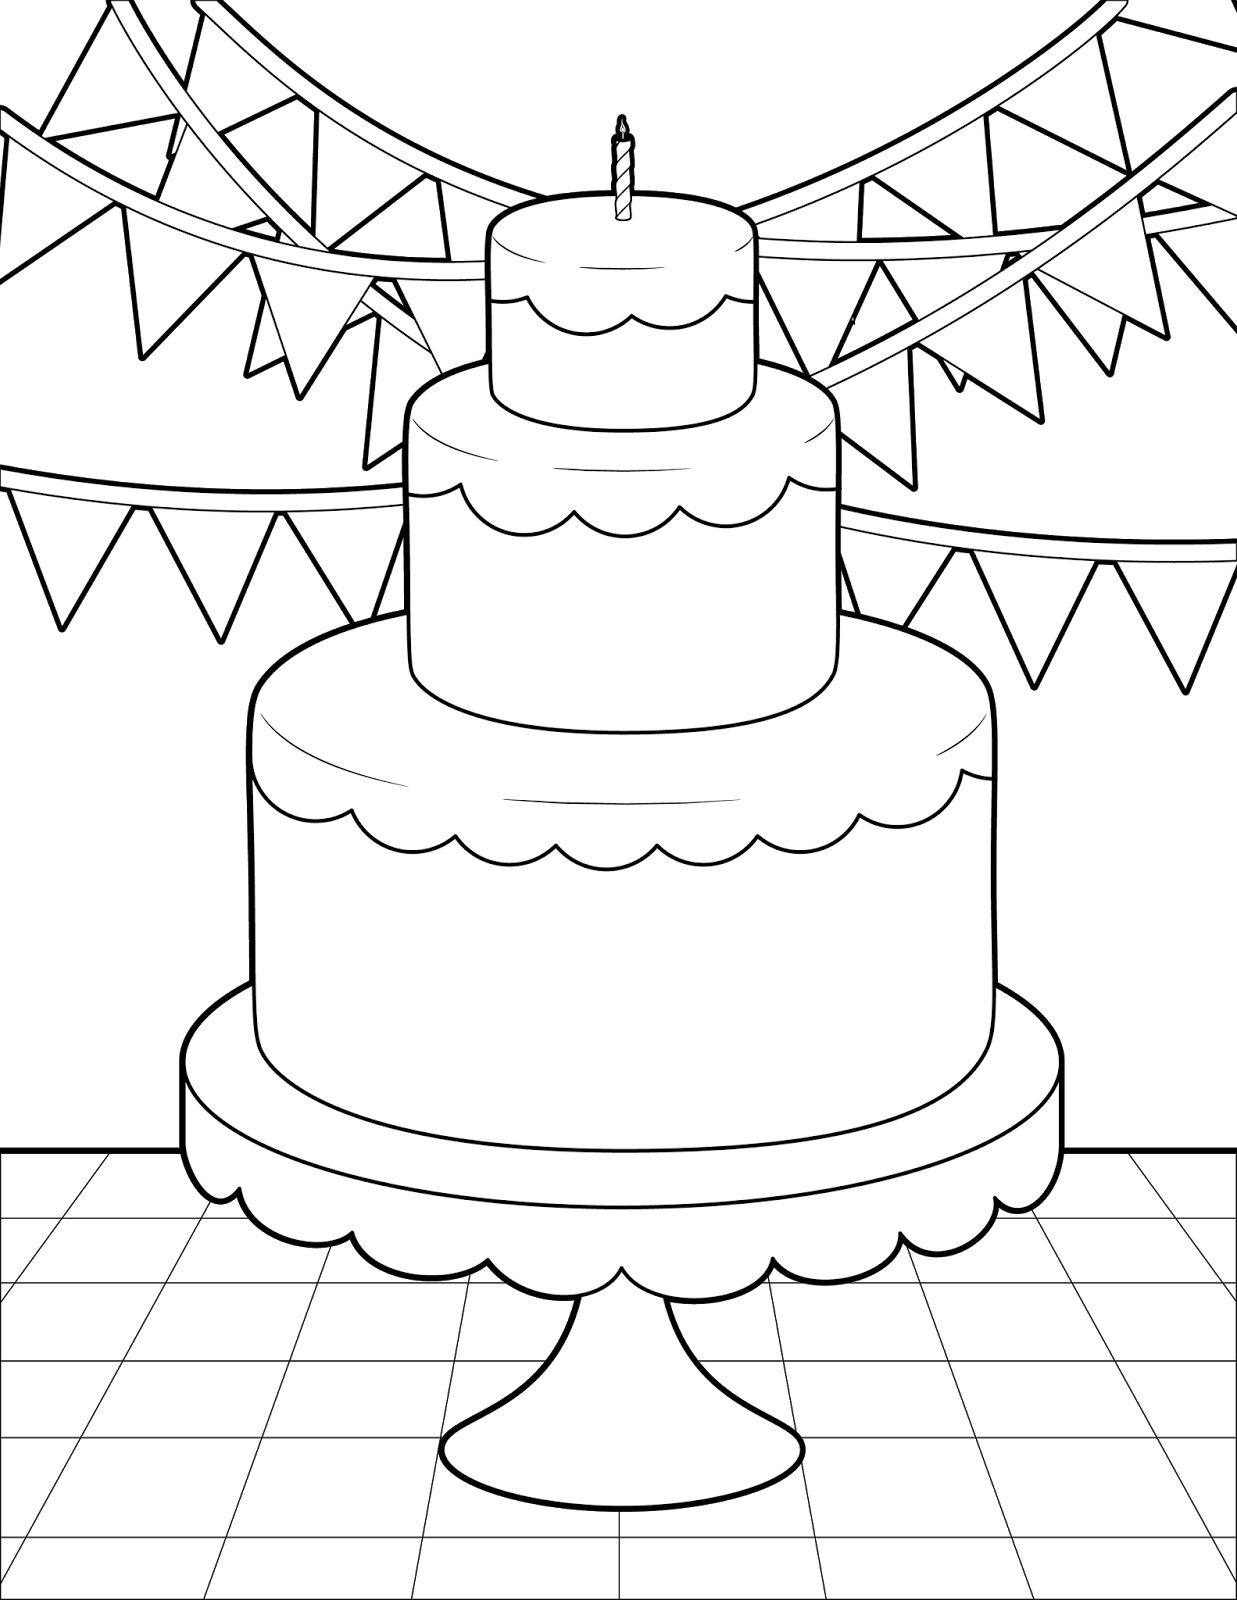 coloring cake pages unicorn cake coloring pages transparent cartoons cute pages cake coloring